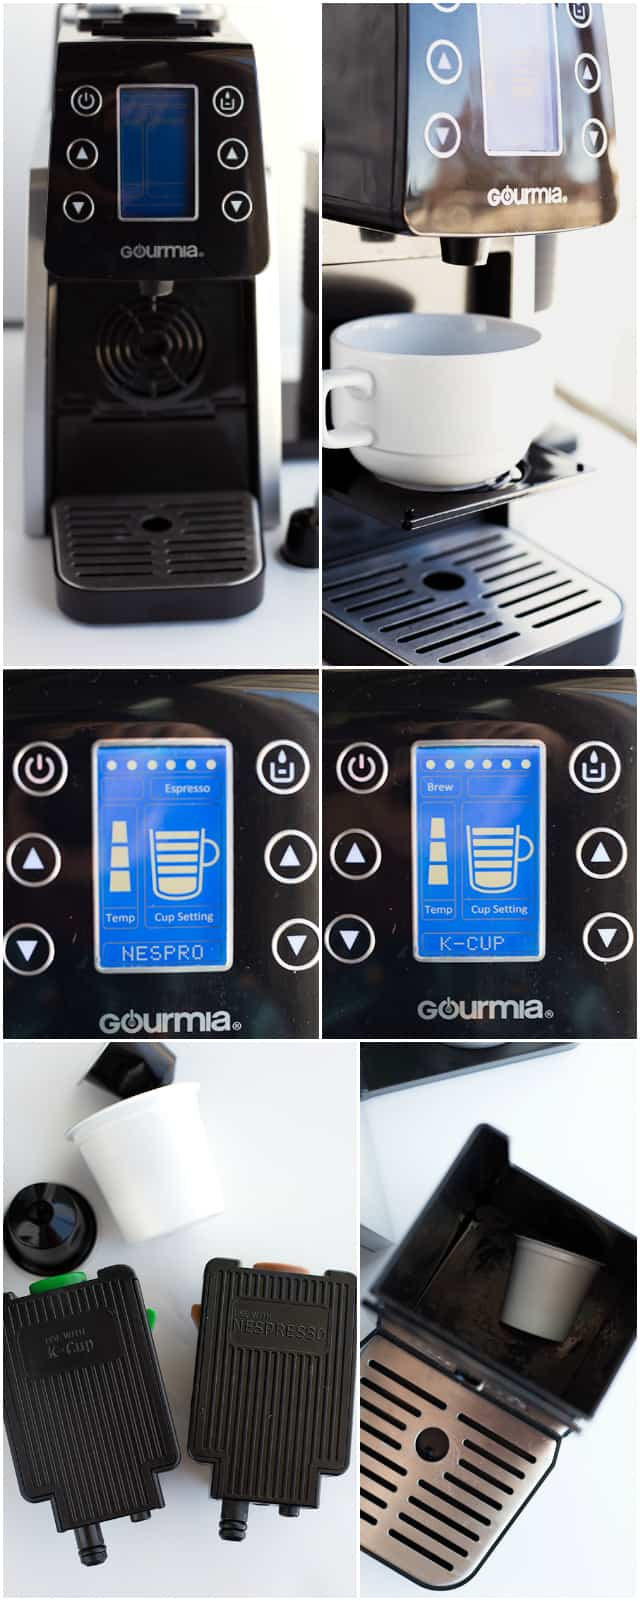 Different pictures of the Gourmia Multi Capsule Coffee Machine